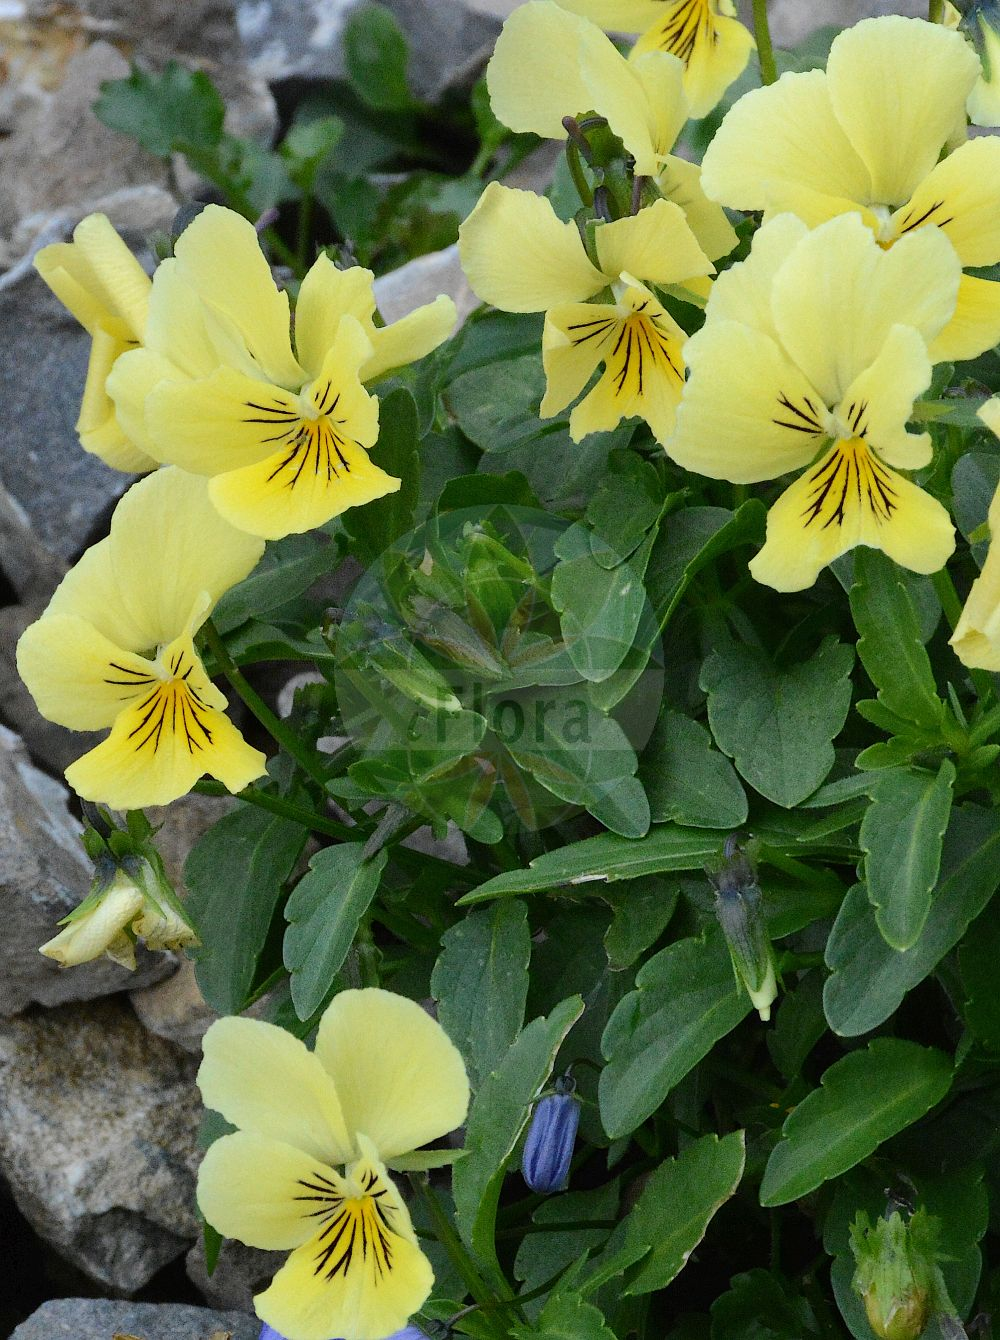 Foto von Viola lutea (Sudeten-Stiefmuetterchen - Mountain Pansy). Das Foto wurde in Schynige Platte, Interlaken, Bern, Schweiz aufgenommen. ---- Photo of Viola lutea (Sudeten-Stiefmuetterchen - Mountain Pansy).The picture was taken in Schynige Platte, Interlaken, Bern, Switzerland. (Viola lutea,Sudeten-Stiefmuetterchen,Mountain Pansy,subsp. elegans,Sudeten-Veilchen,Vogesen-Stiefmuetterchen,Viola,Veilchen,violet,Violaceae,Veilchengewaechse,Violet family)